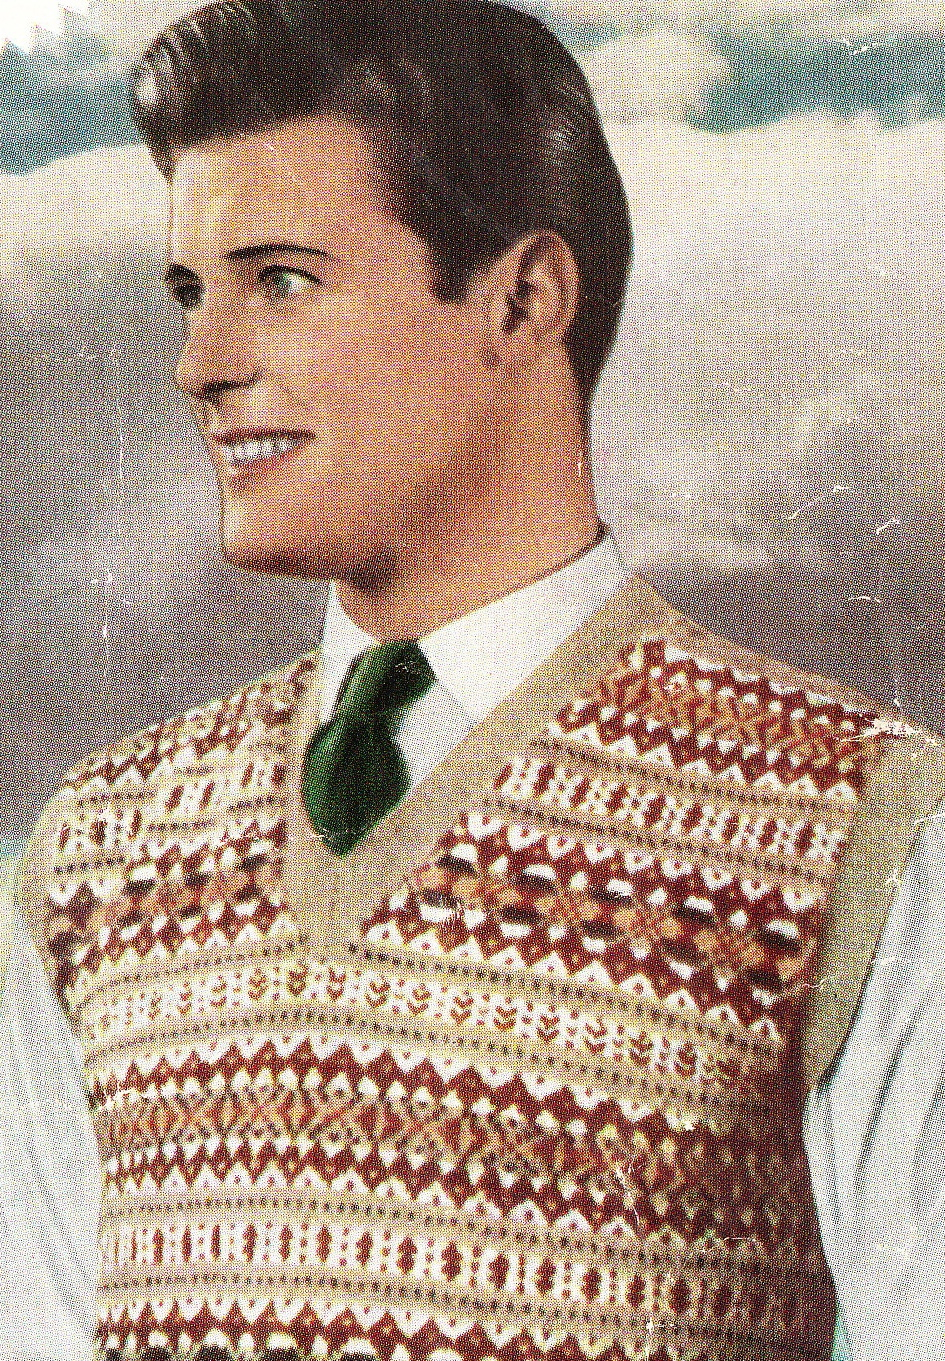 Vintage patterns and making: Celebrities in knitting and crochet ...